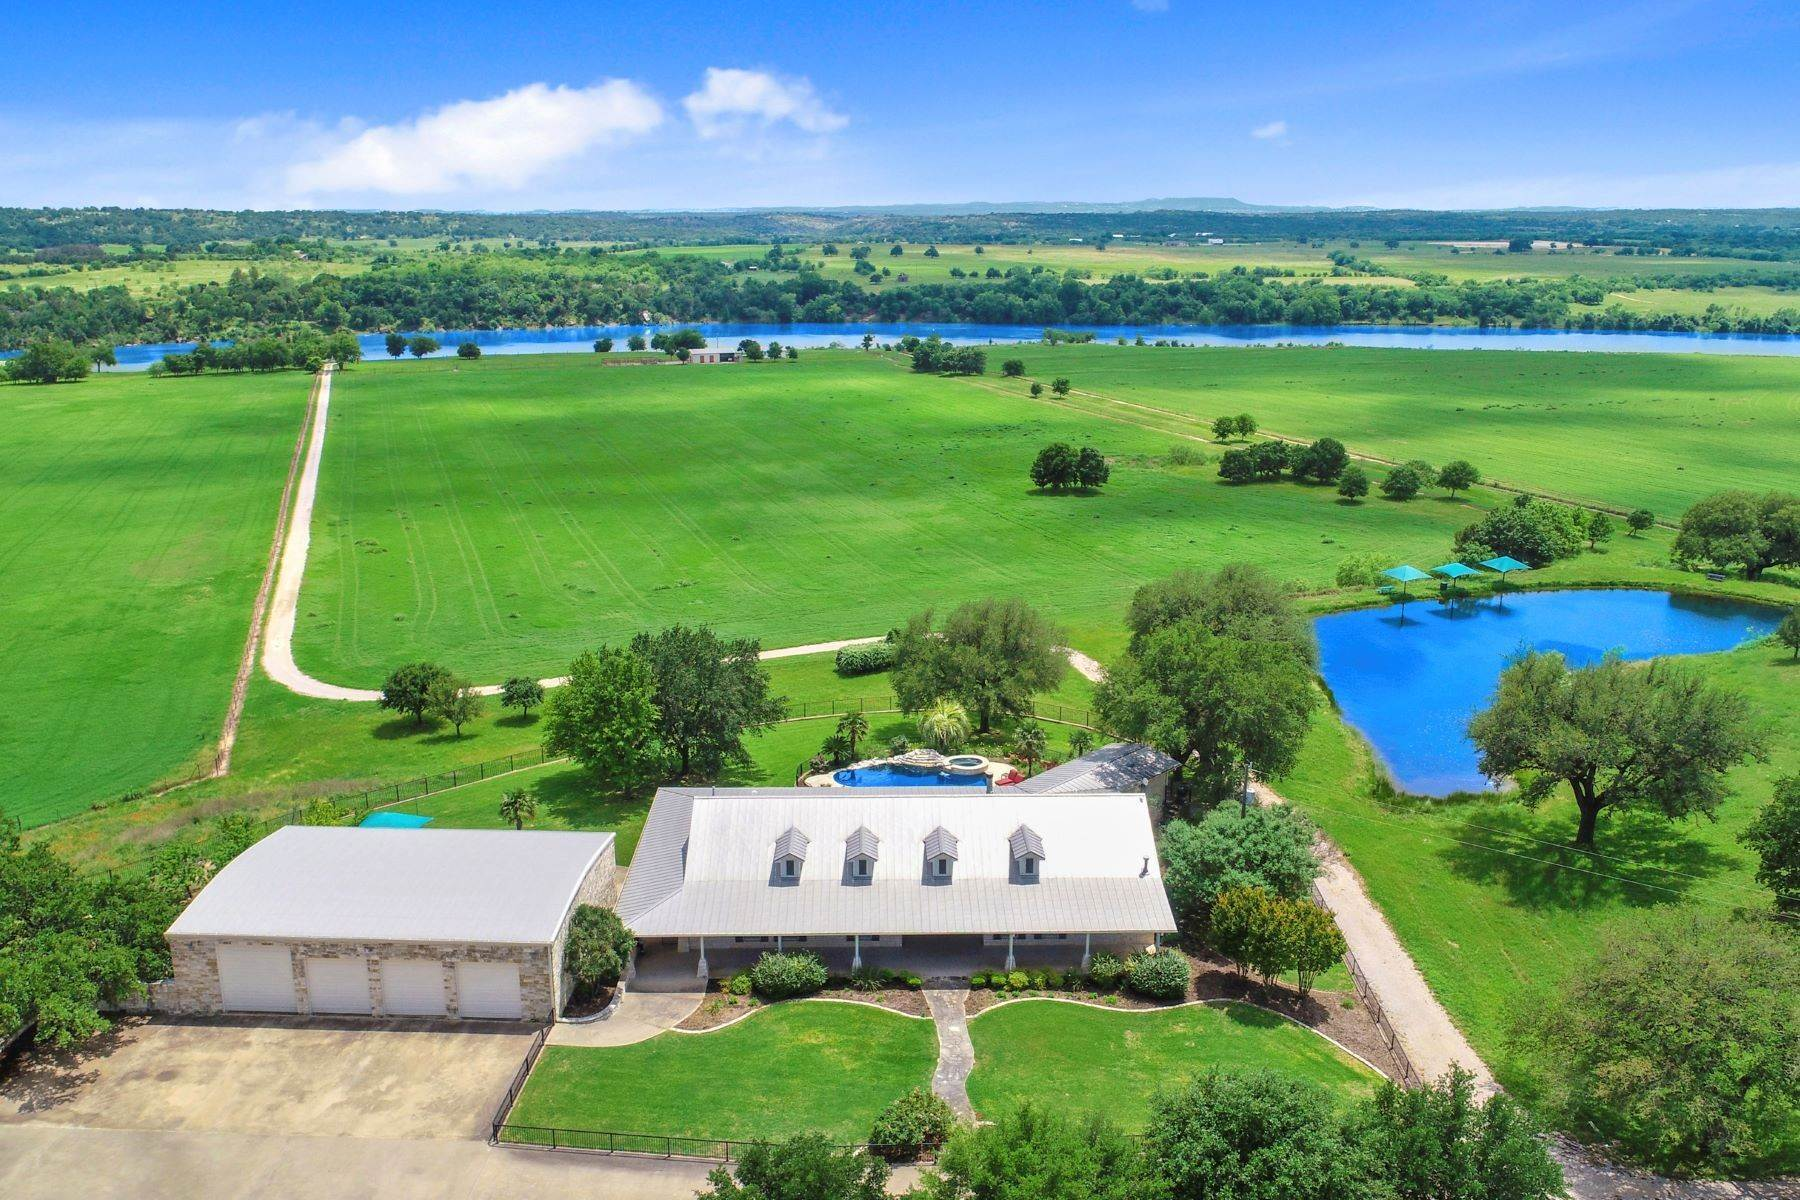 Single Family Homes for Sale at 575 Cimarron Ranch Road, Marble Falls, TX 78654 575 Cimarron Ranch Road Marble Falls, Texas 78654 United States